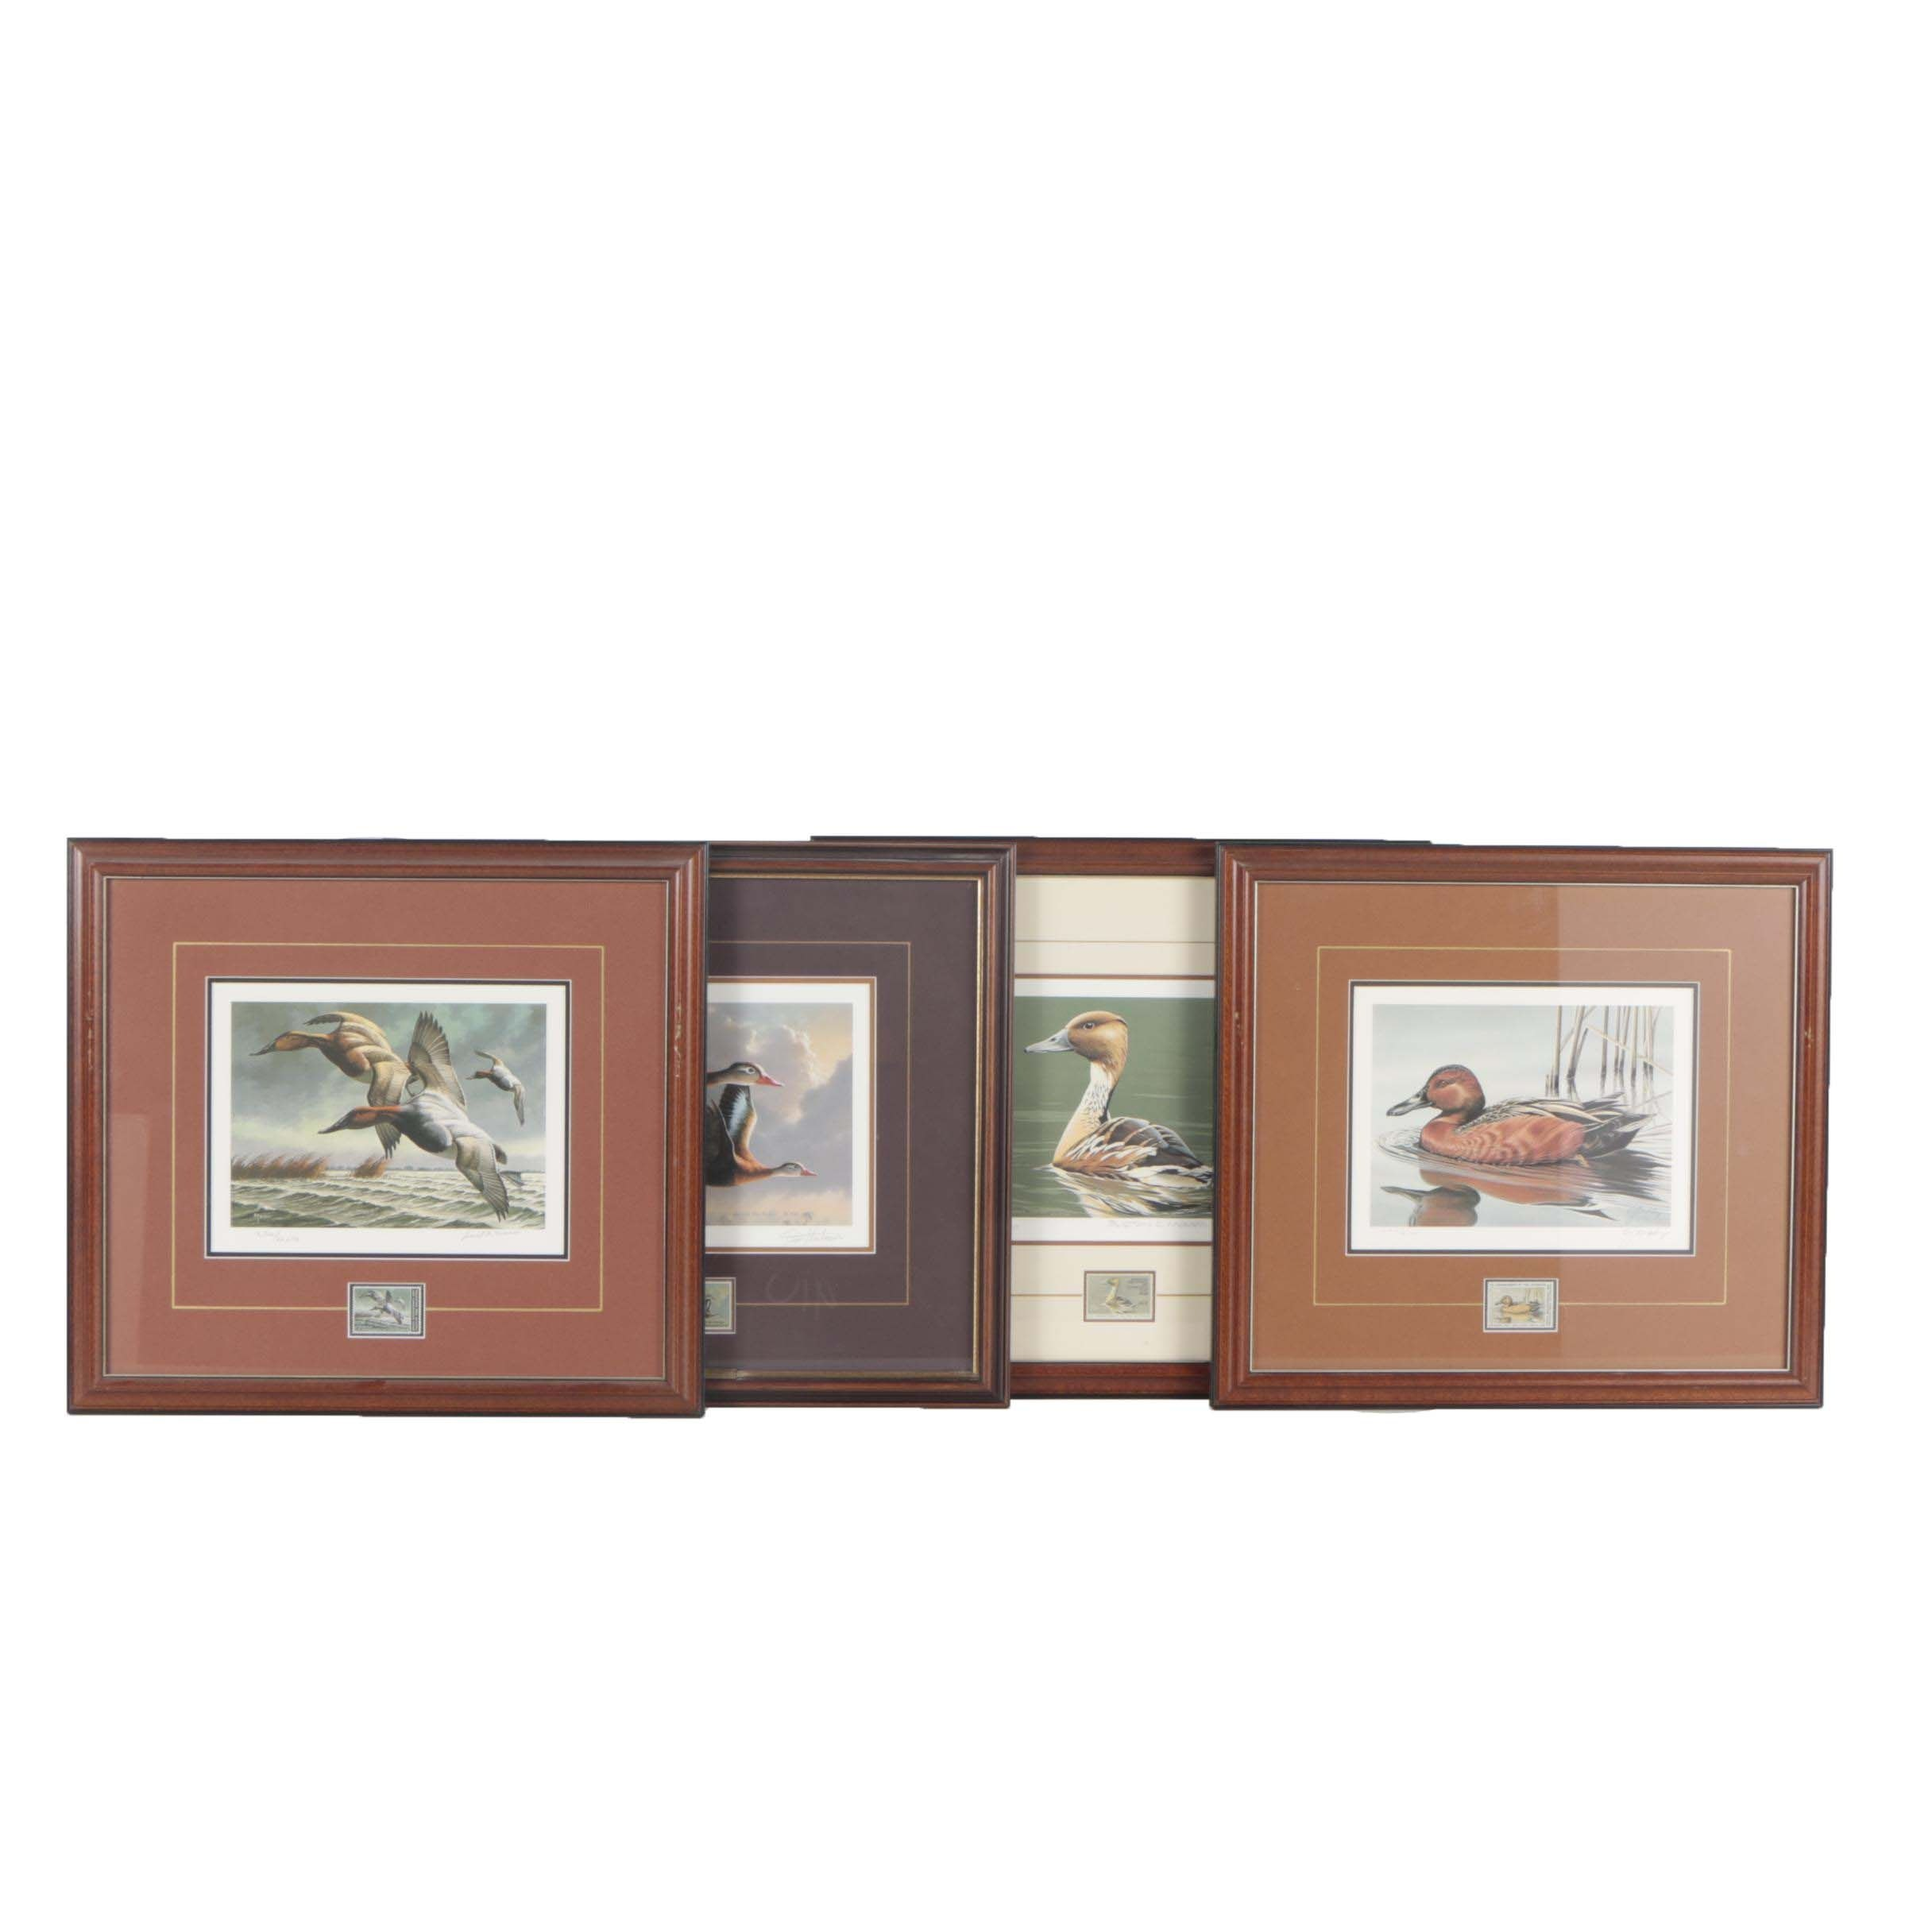 Migratory Bird Hunting and Conservation Offset Lithographs and Stamps